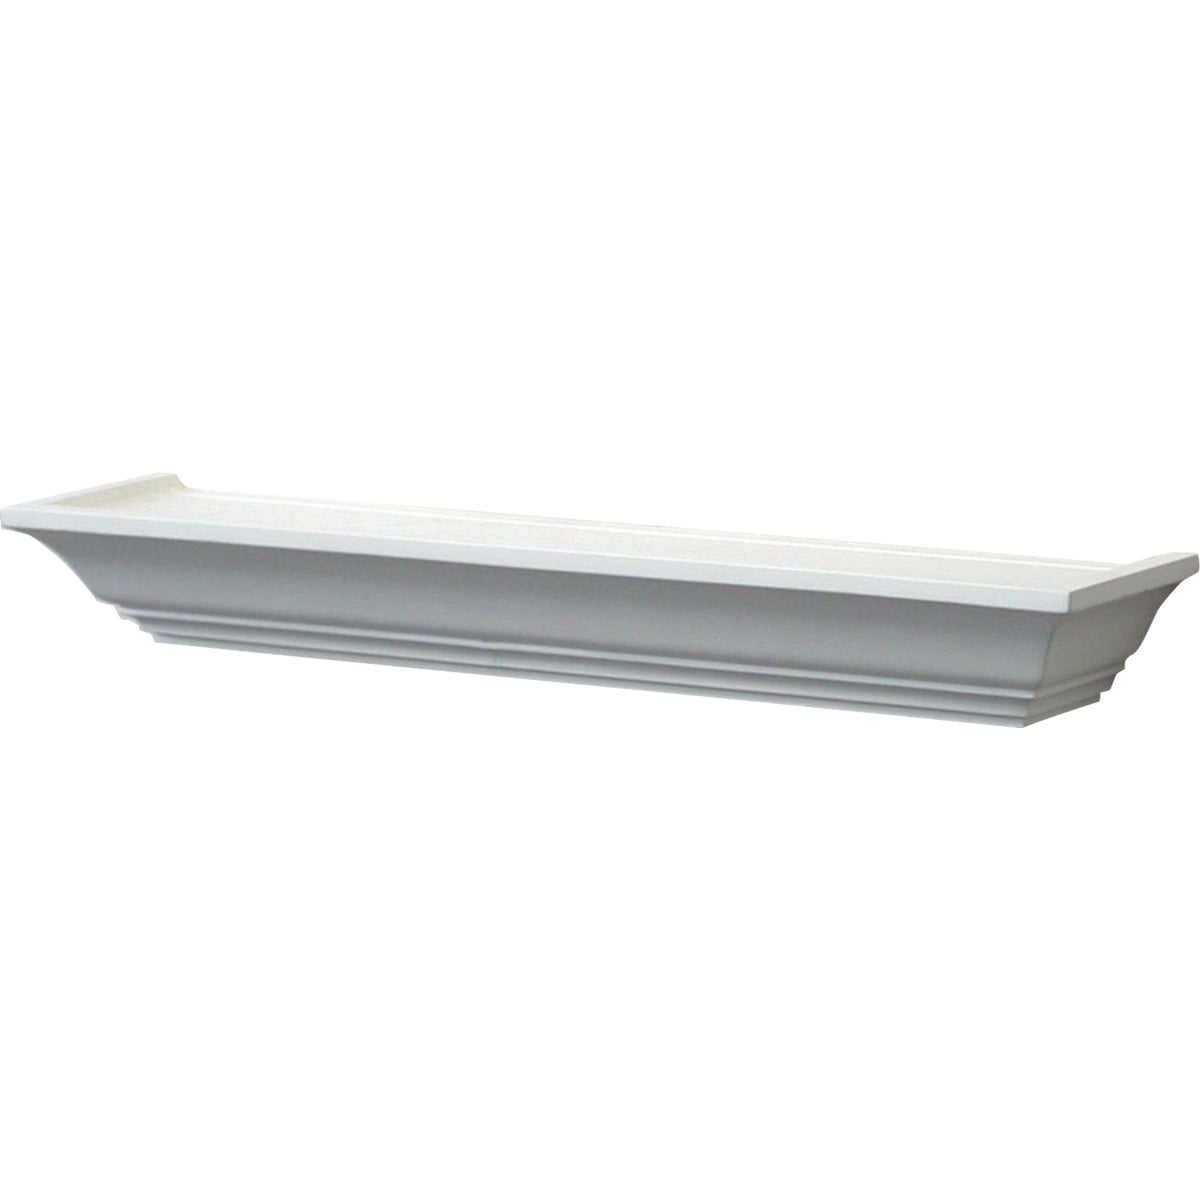 "24"" WHITE MANTEL SHELF - 0149-24WT by Knape & Vogt Mfg Co"